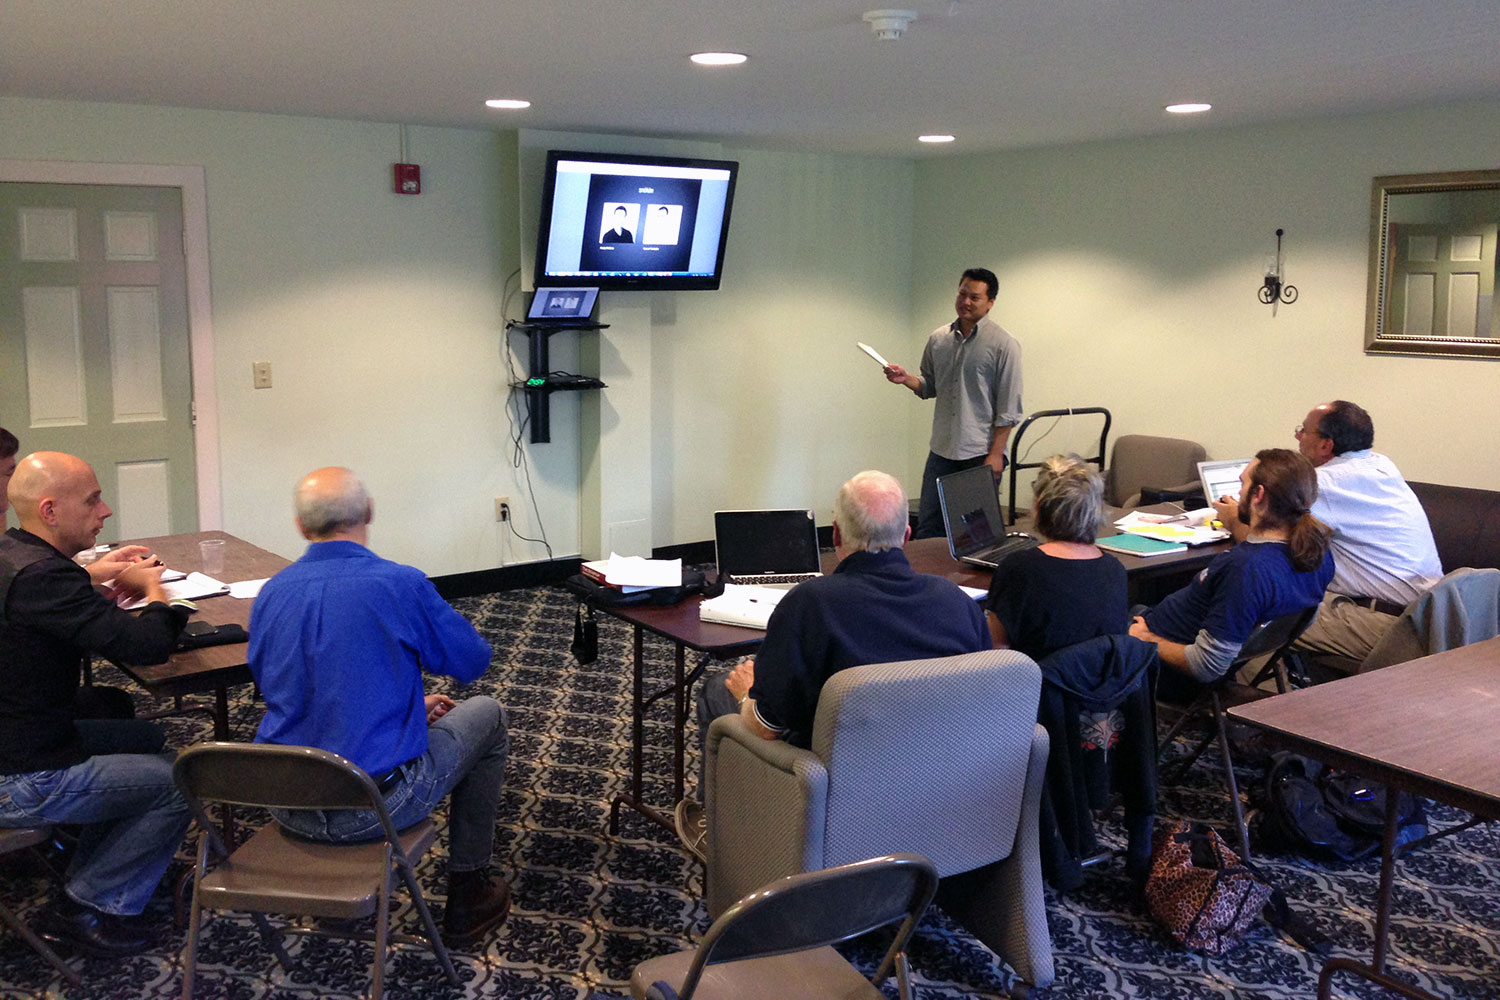 Andy presenting at Click Workspace in Northampton, MA during a Lean Launchpad workshop.